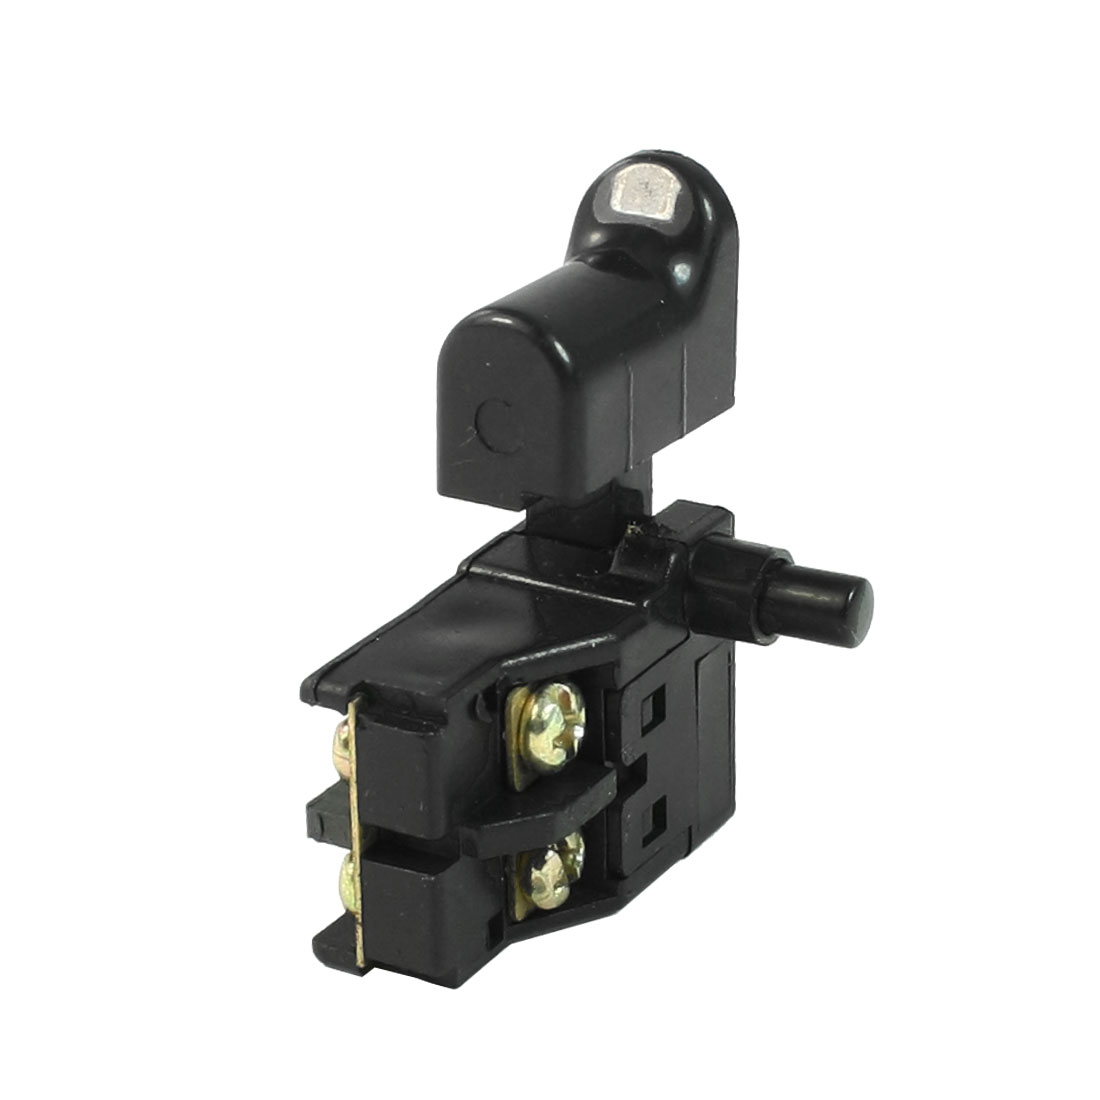 AC 250V/3A 125V/6A SPST Lock on Electric Tool Trigger Switch